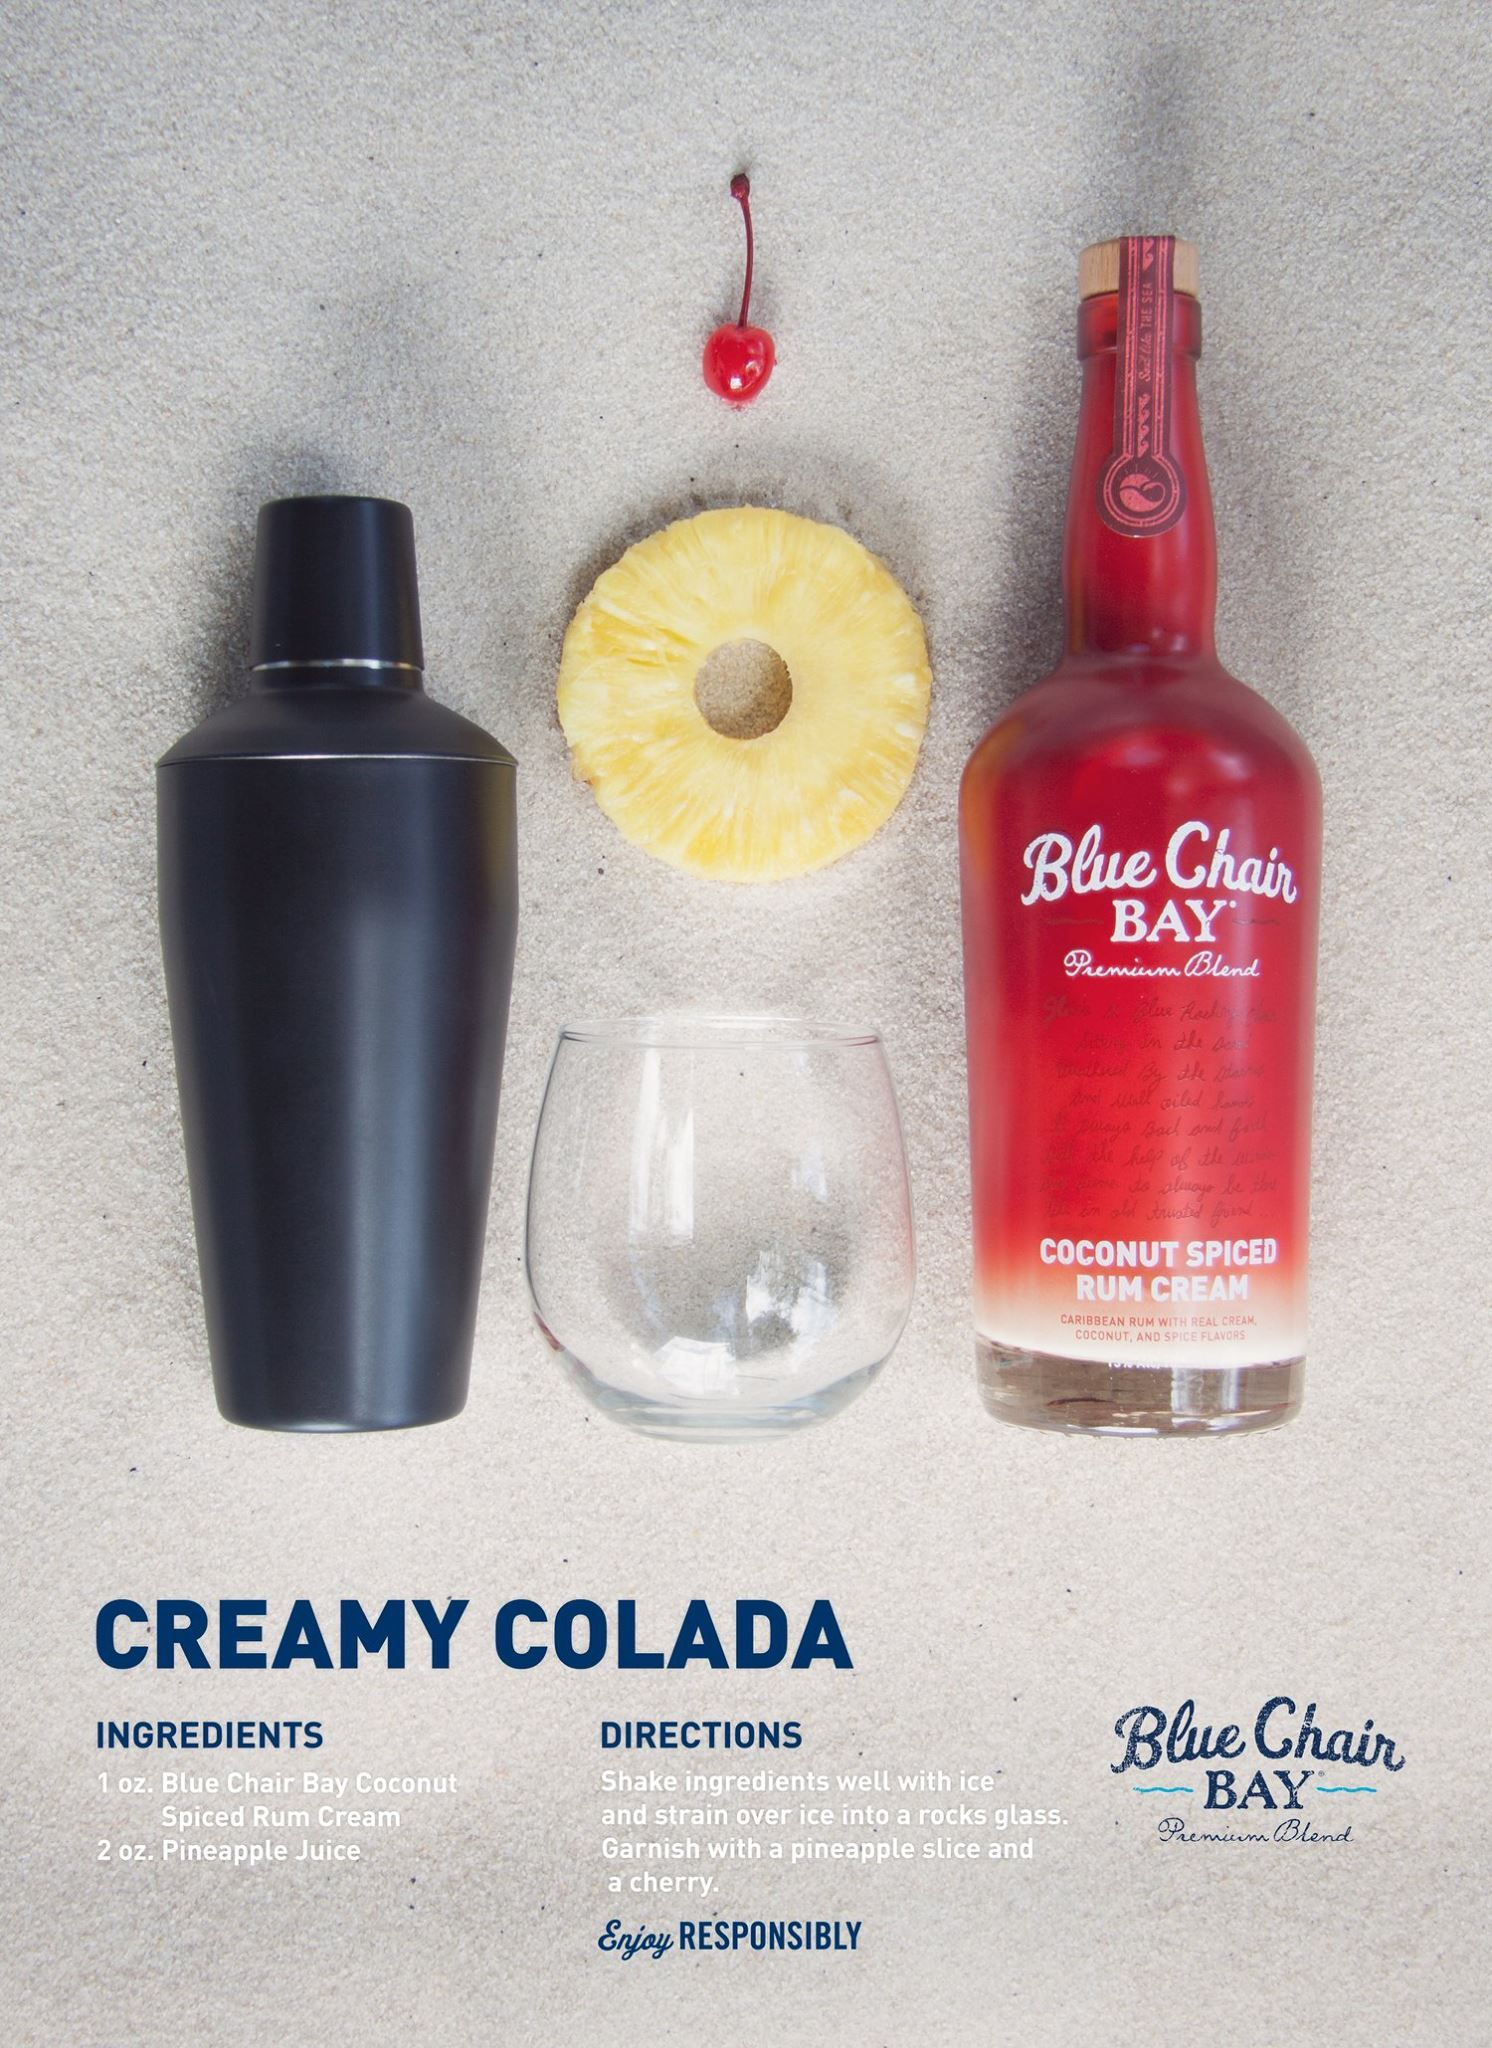 Buy Blue Chair Bay Rum Online Design Bar All You Need To Make A Creamy Colada Is